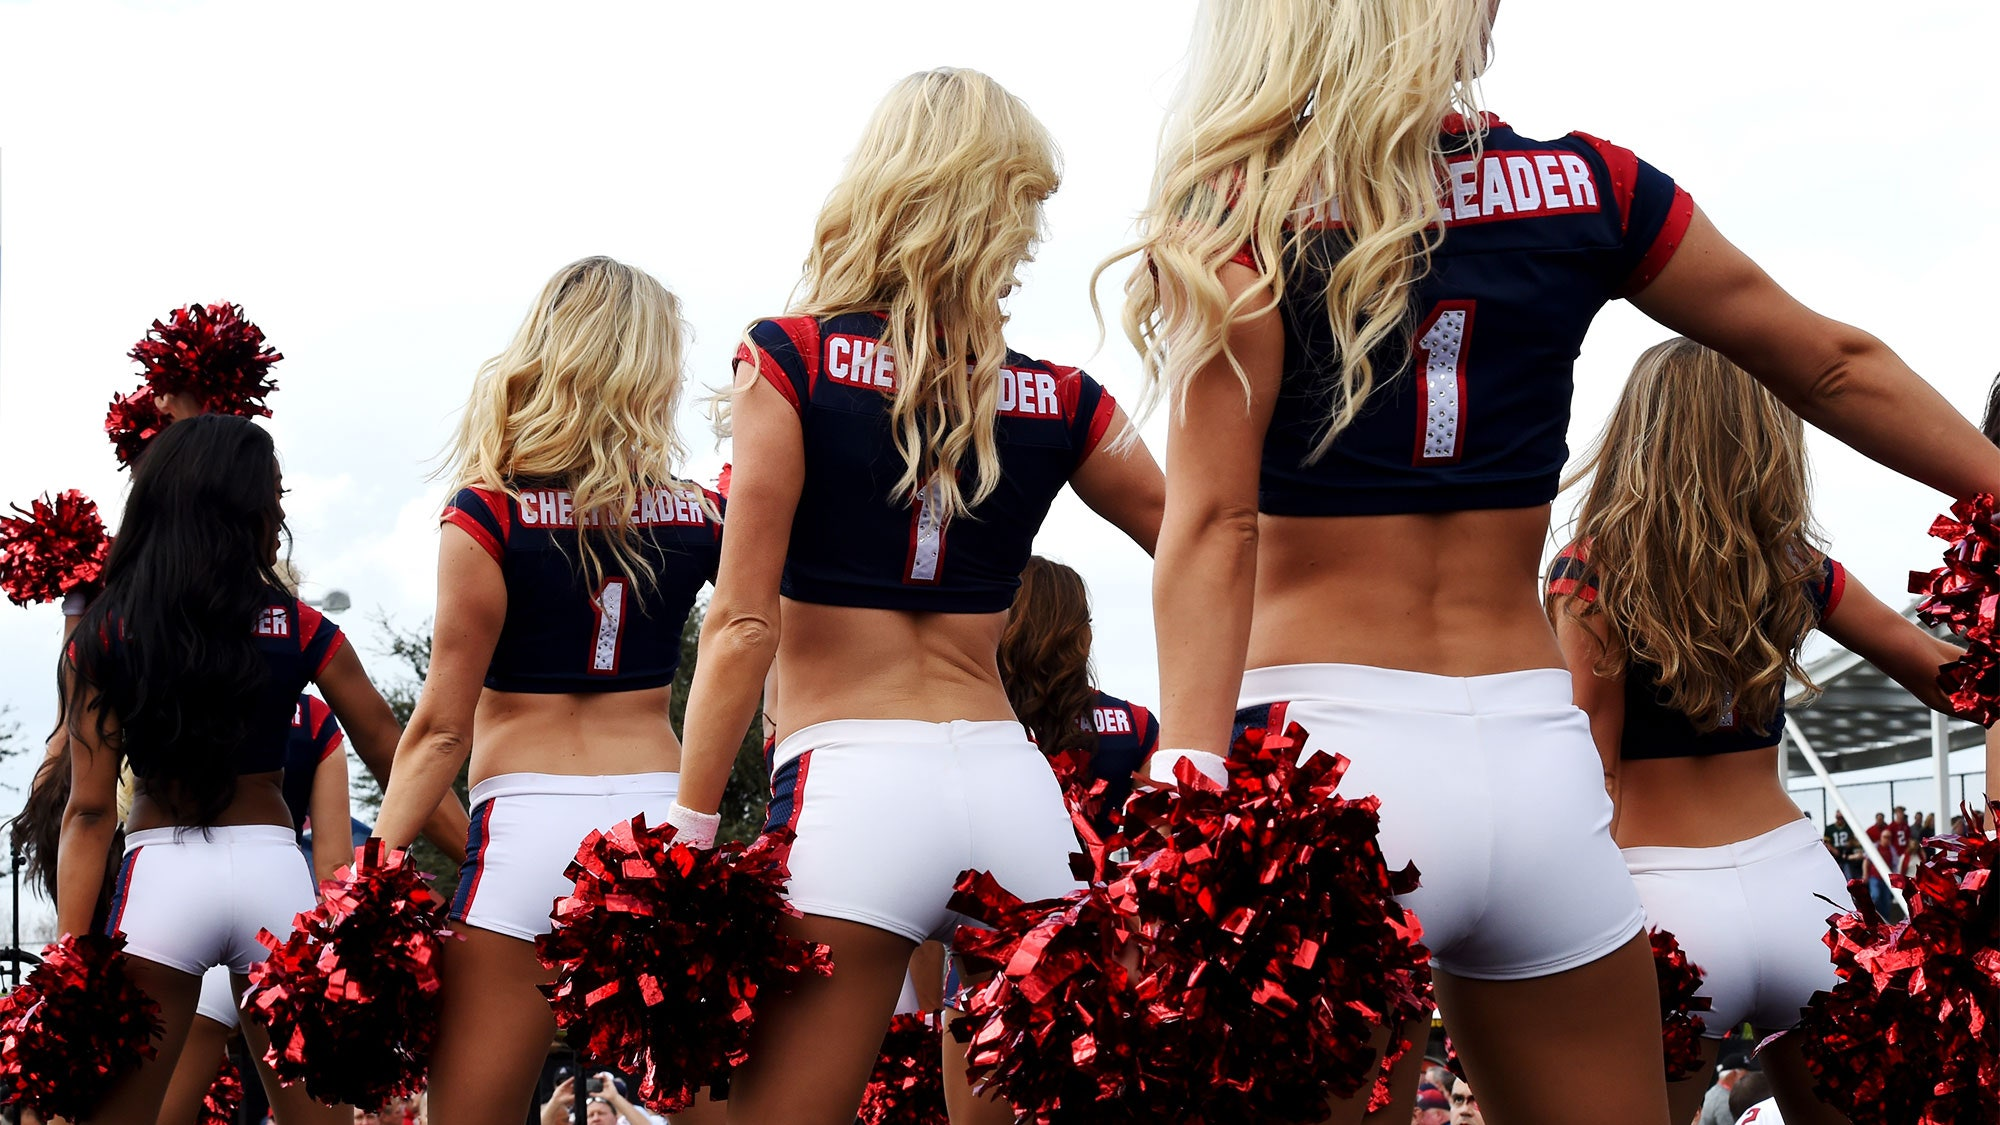 Cheerleaders first sex experience